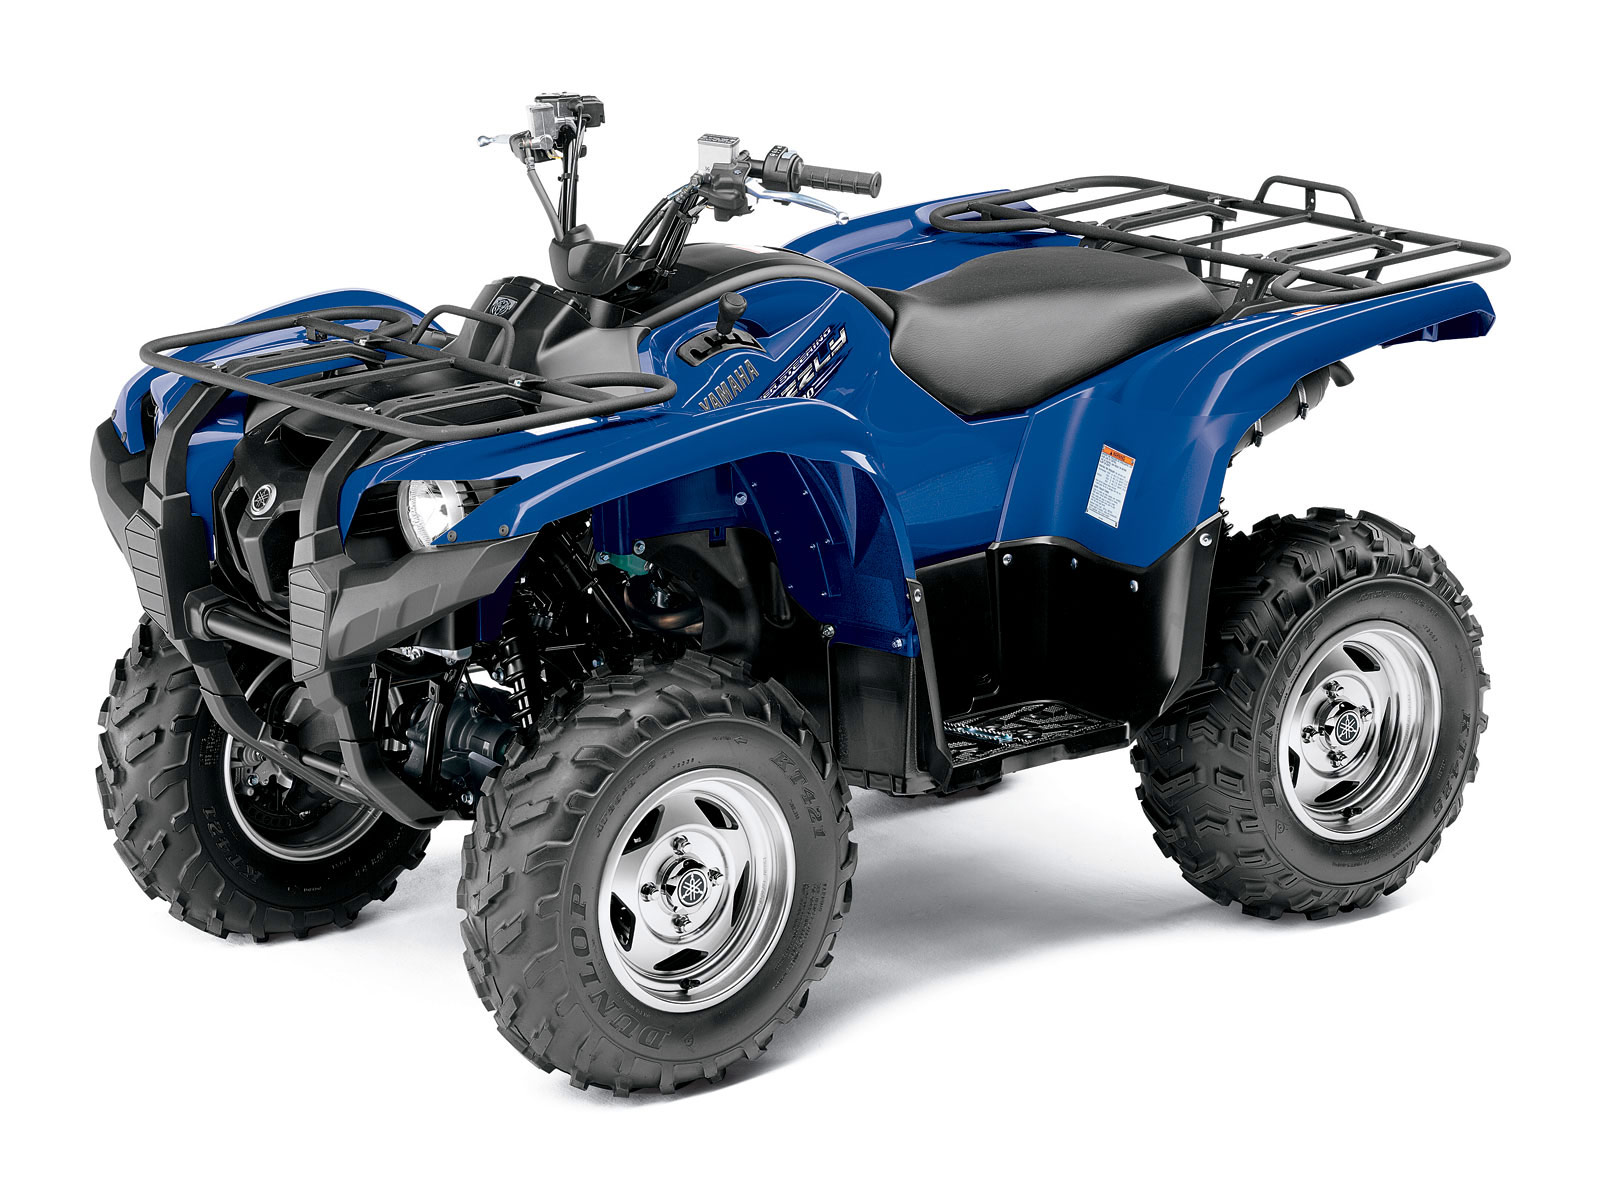 yamaha atv pictures 2011 grizzly 700 fi 4x4 eps. Black Bedroom Furniture Sets. Home Design Ideas